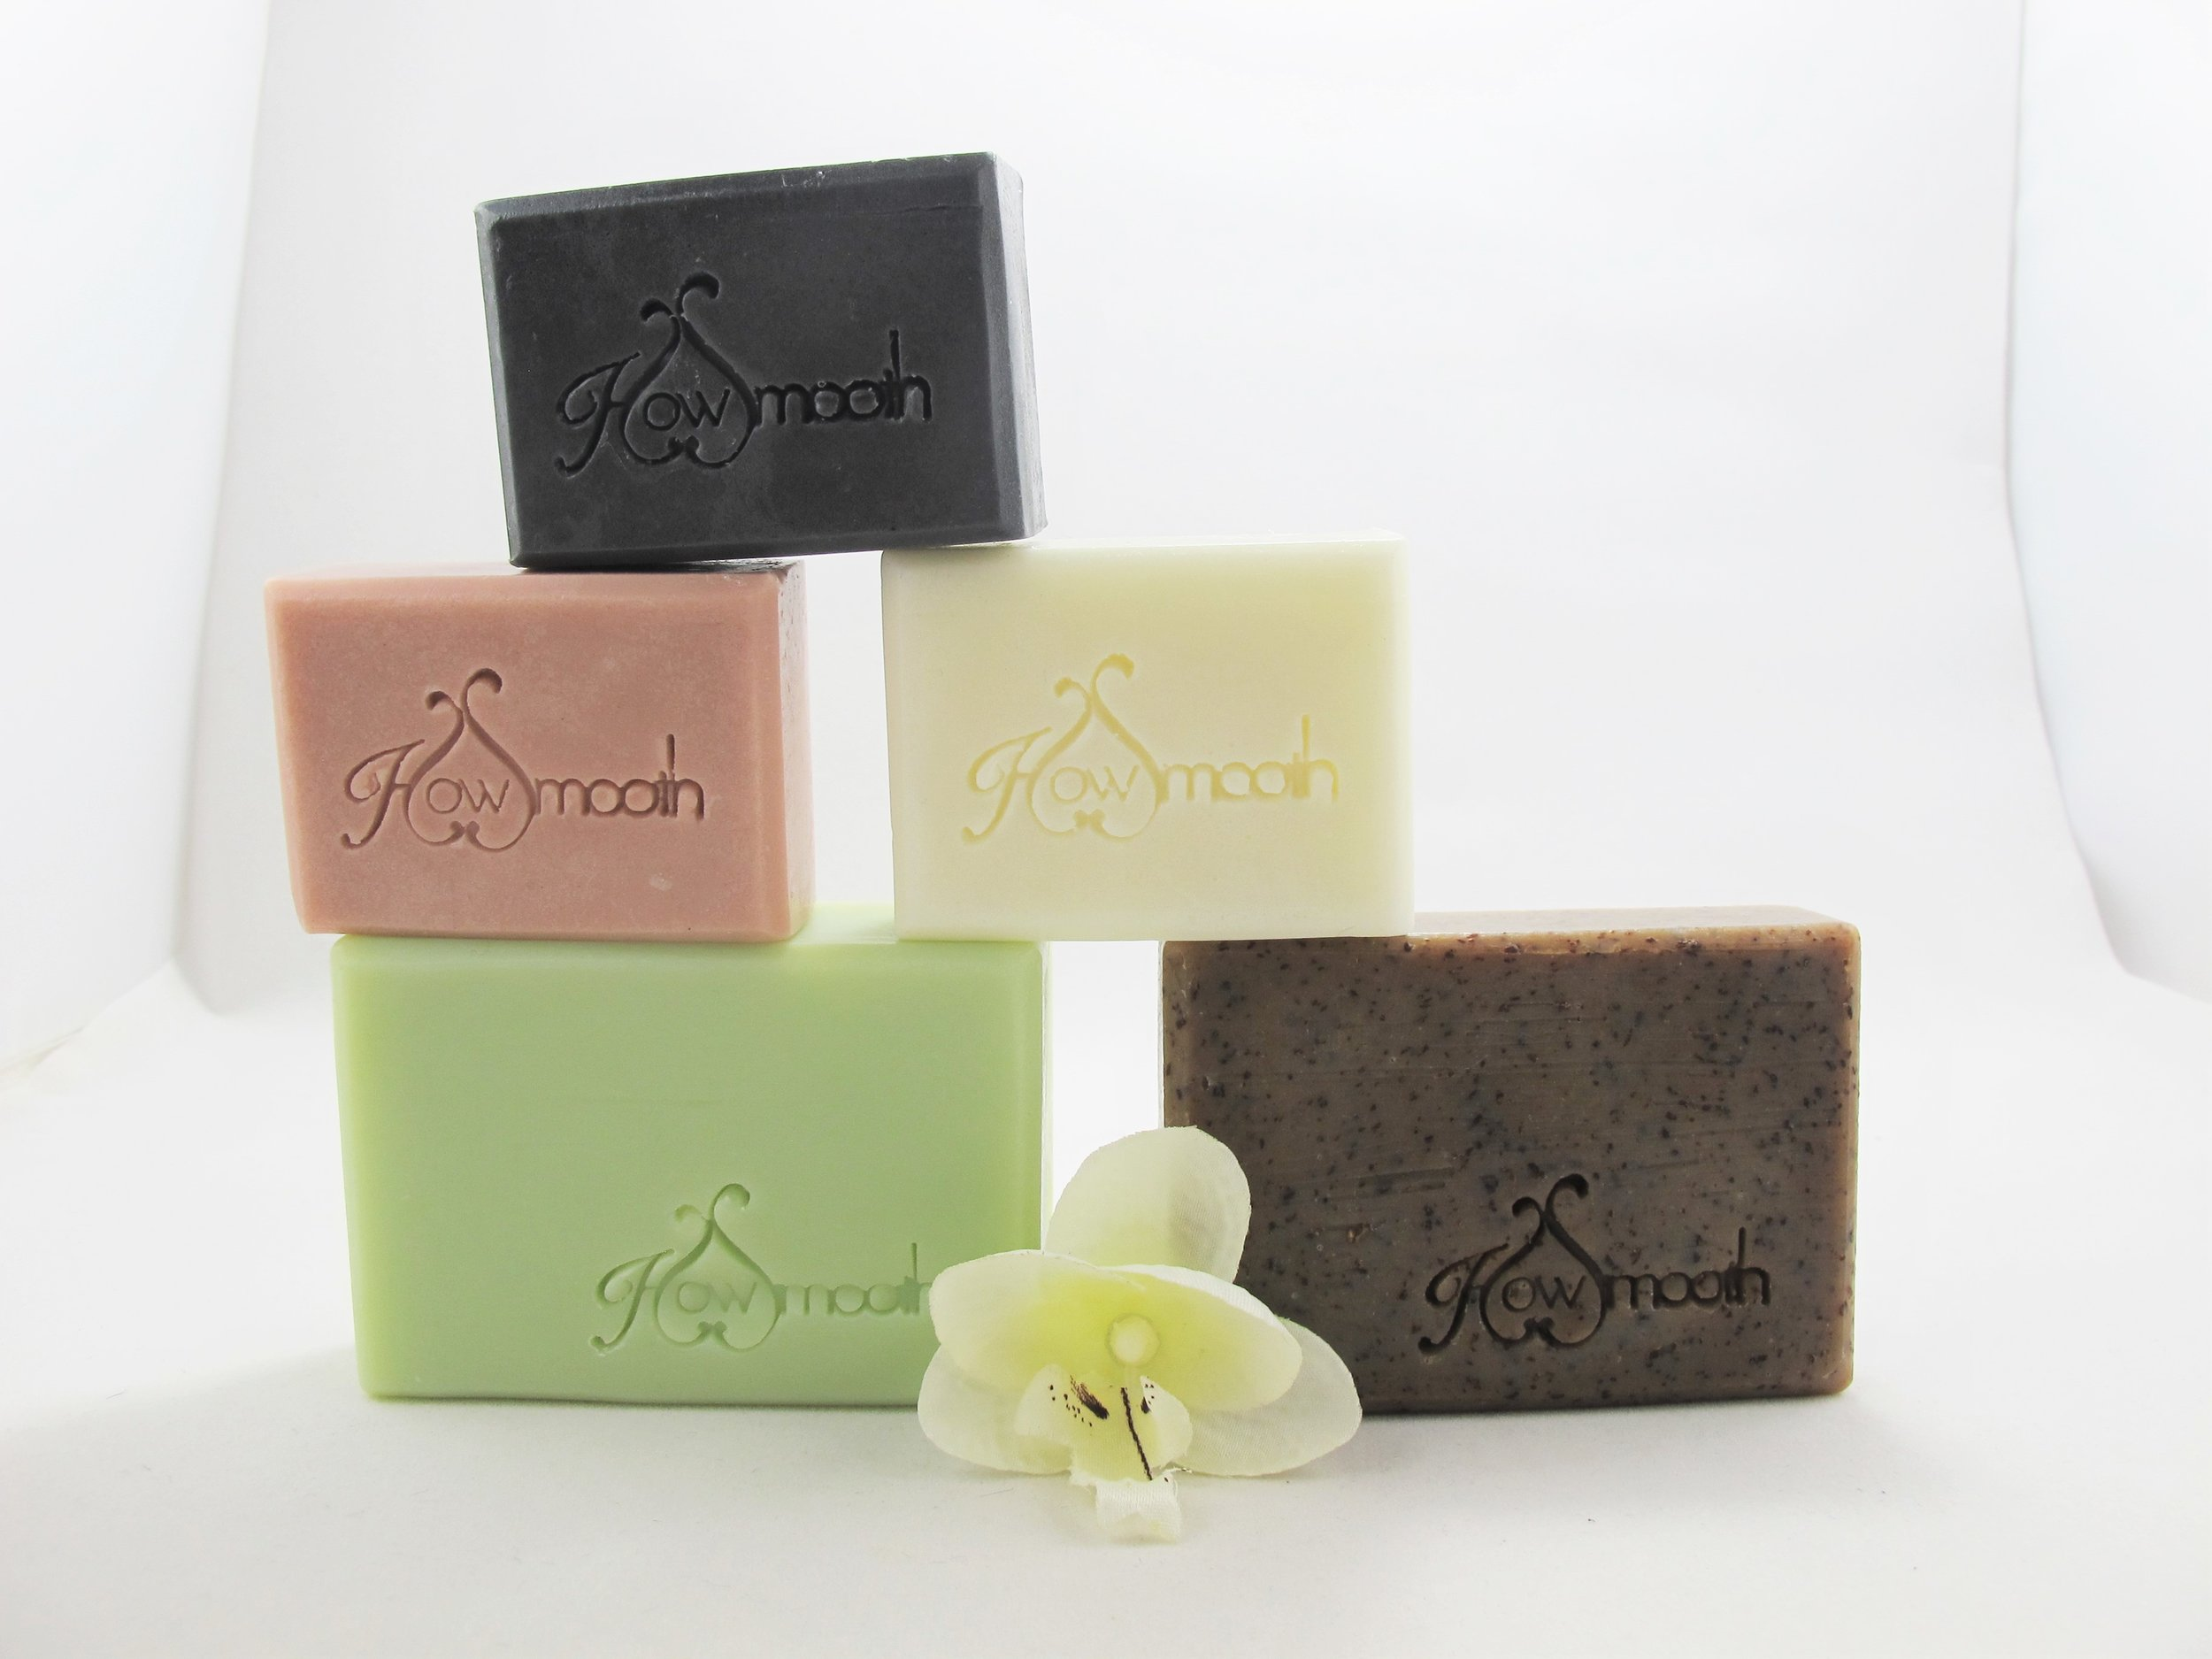 Handcrafted soap from HowSmooth